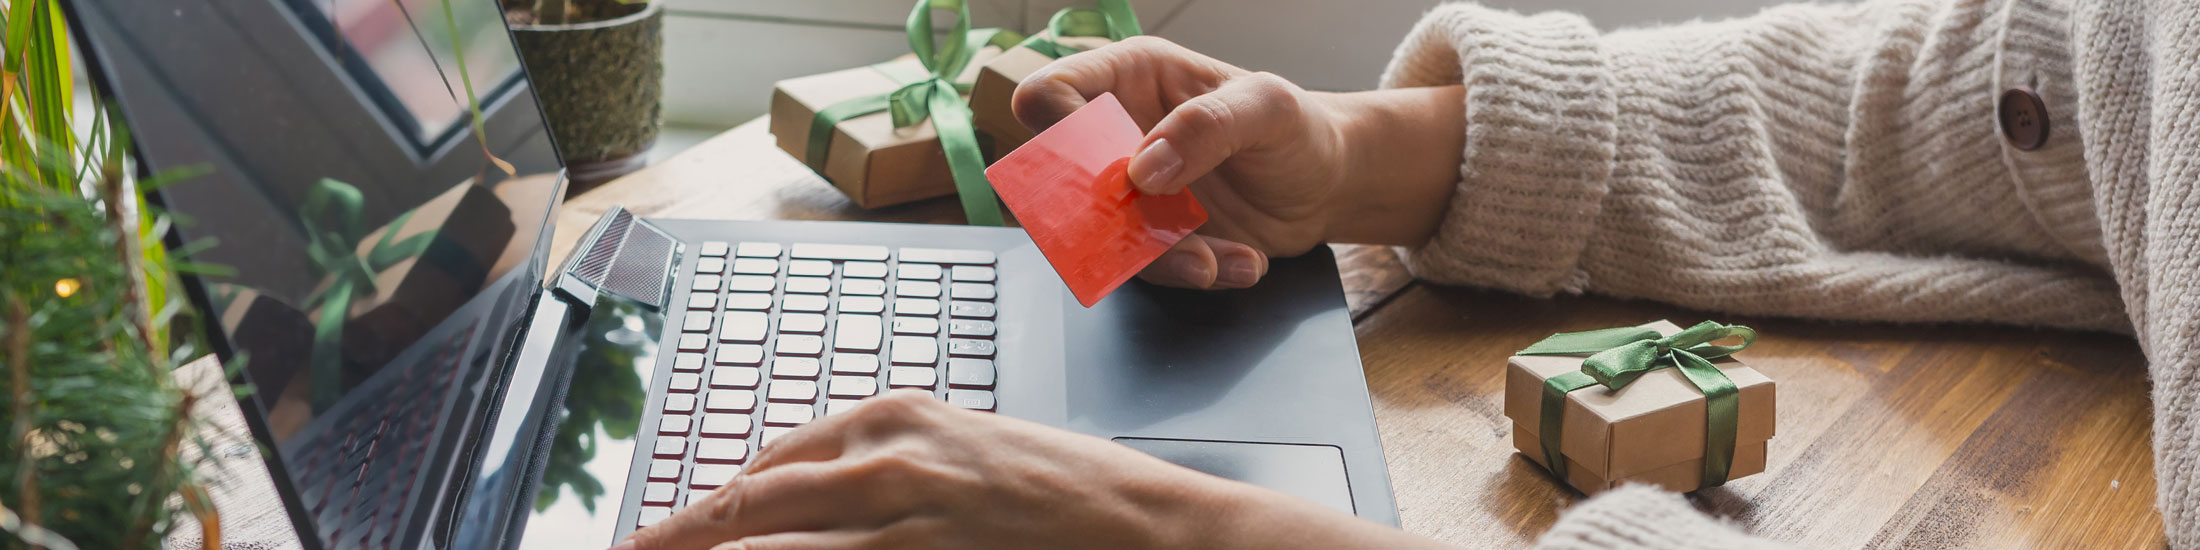 Most Shoppers Will Buy Gifts Online This Year, But Worry About Fraud